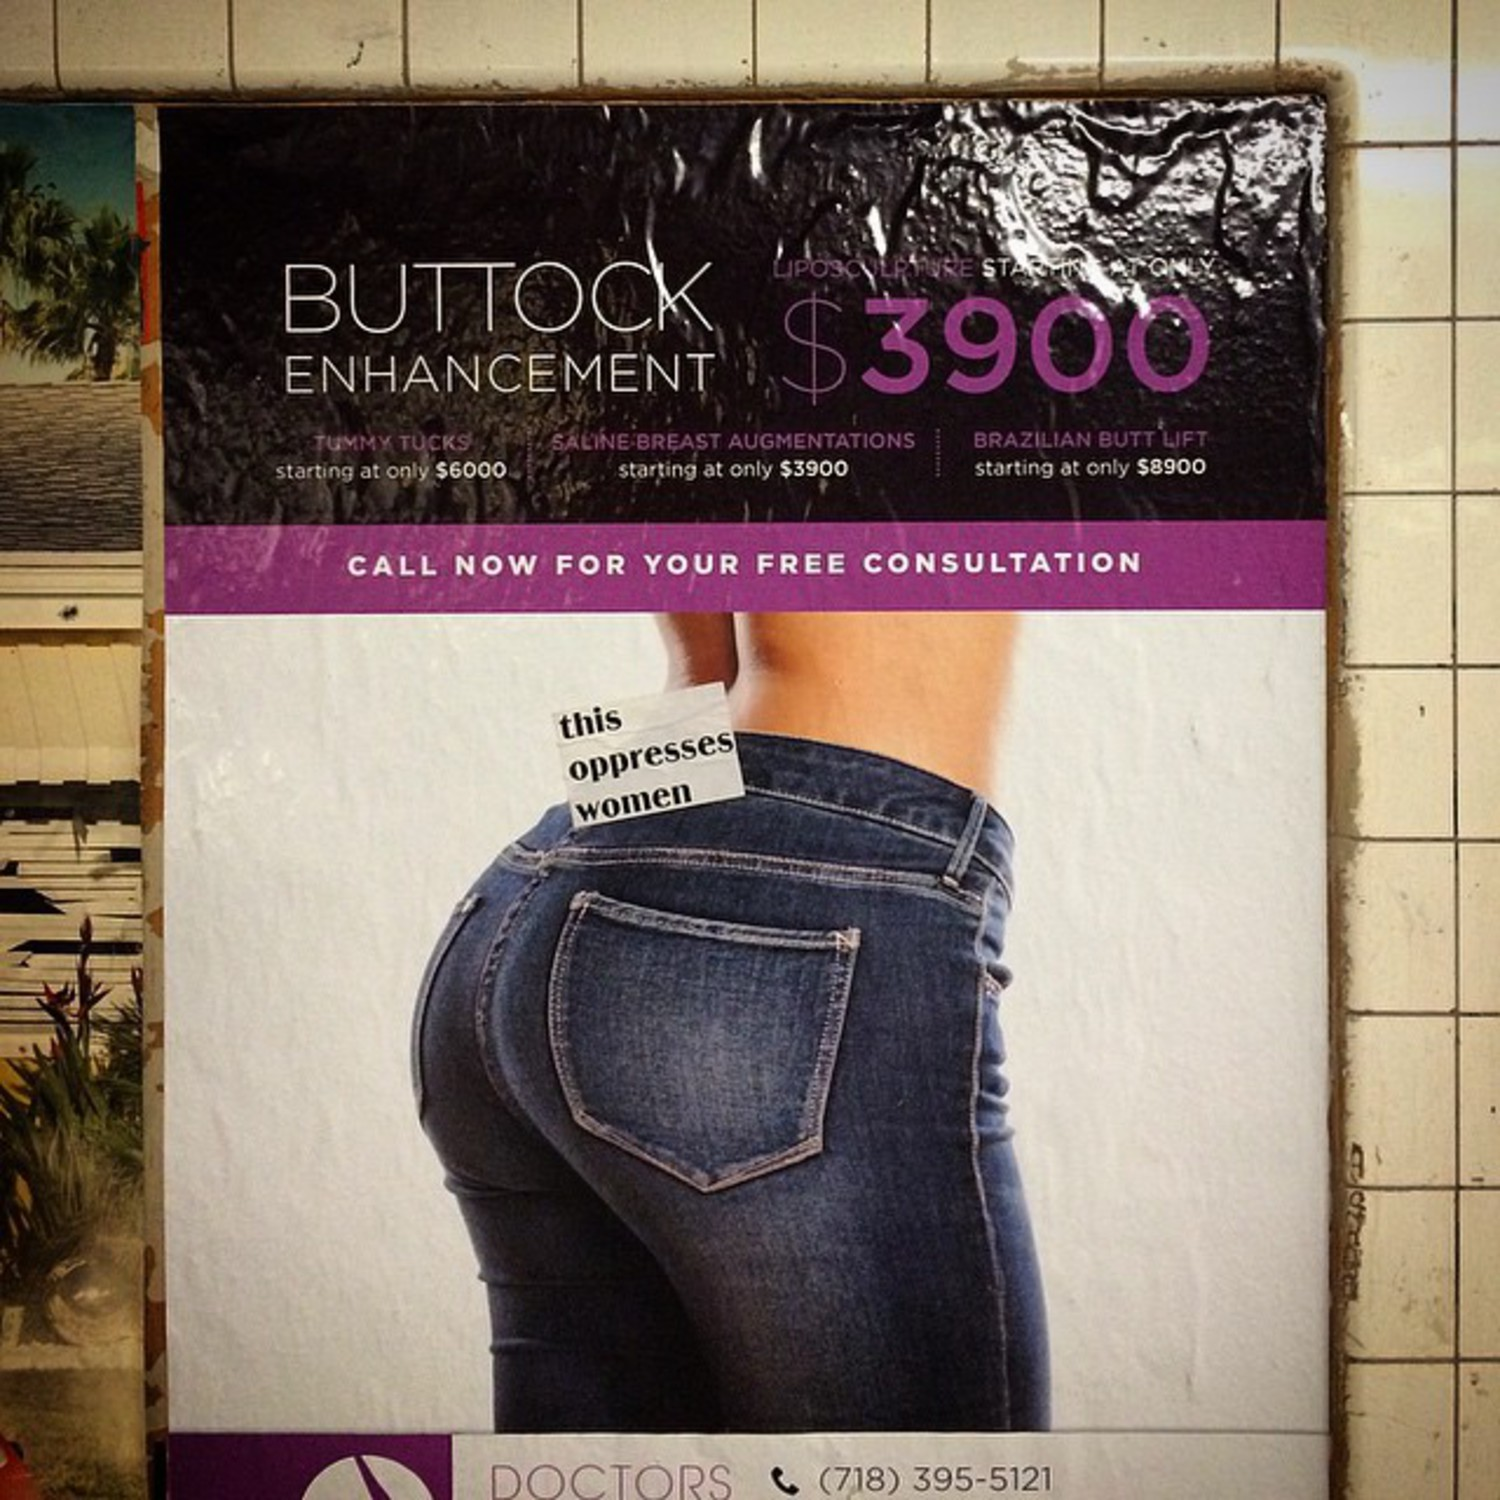 #thisoppresseswomen #theageofbooty #ftrain #brooklyn